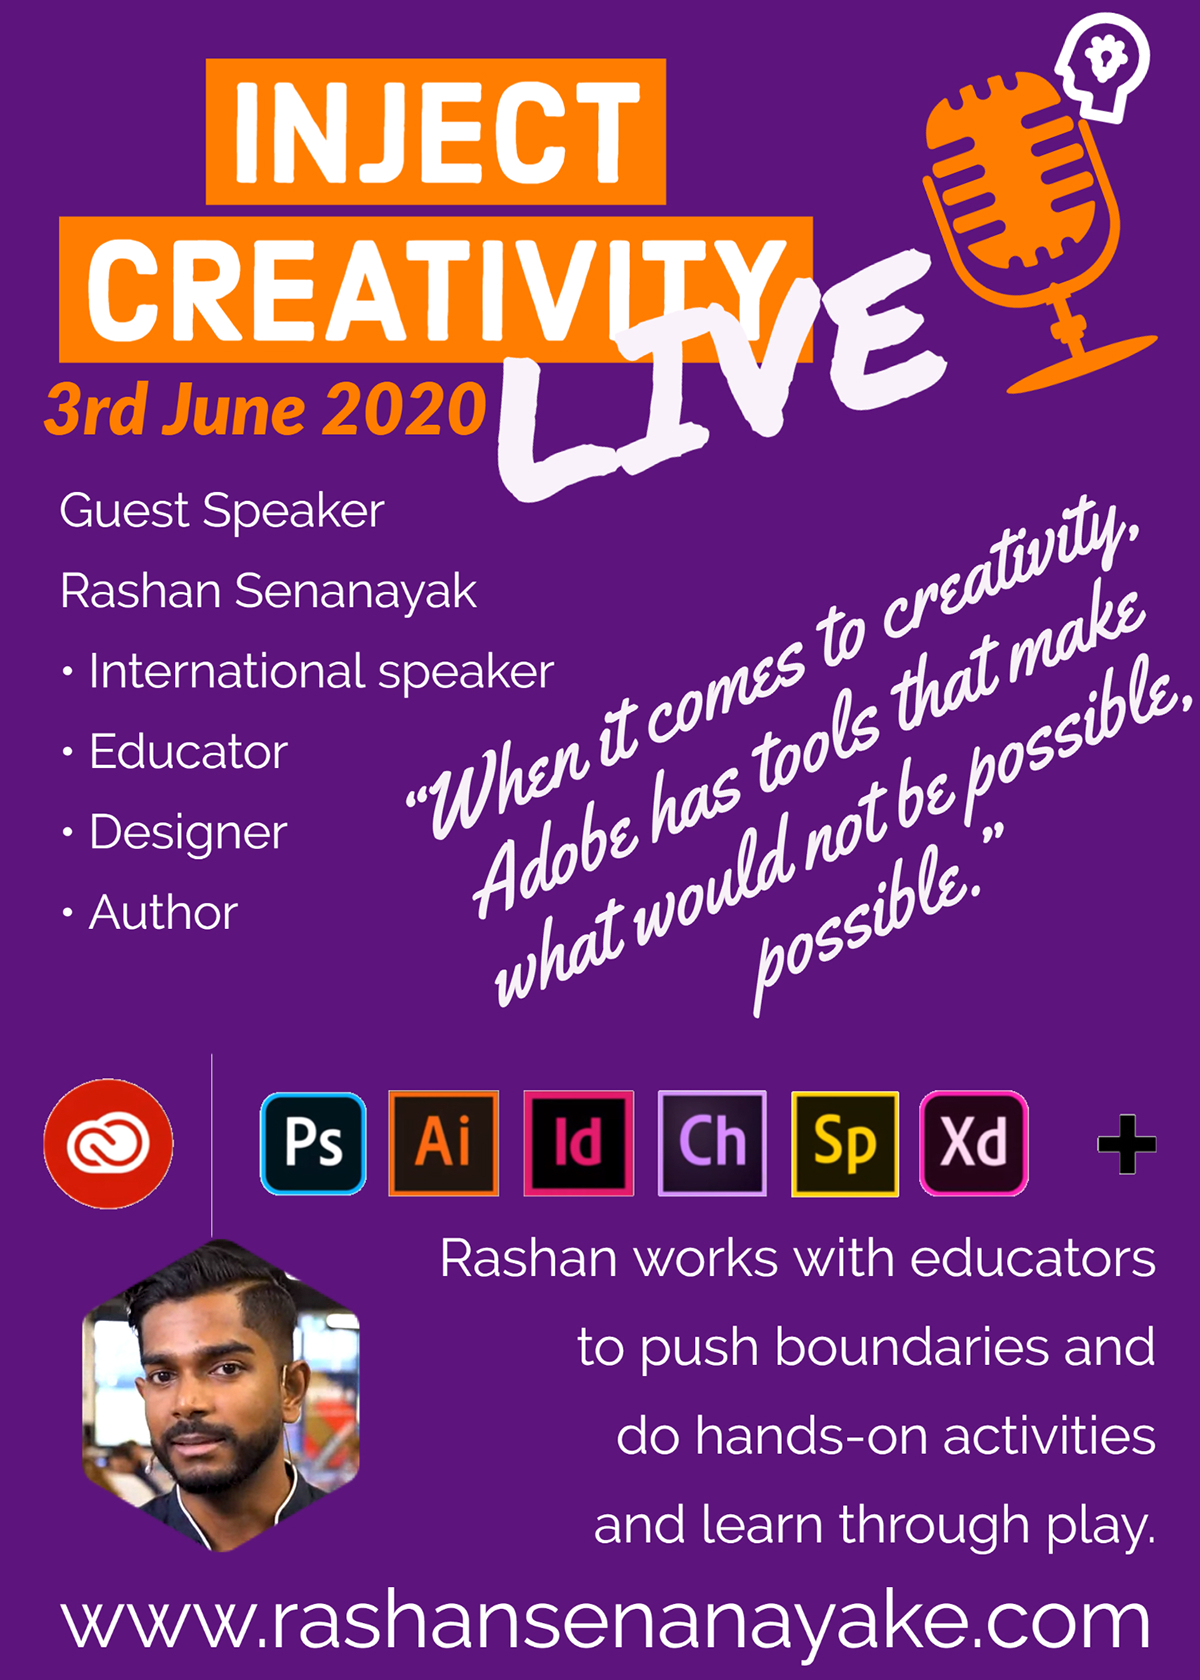 """LIVE LIVE INJECT CREATIVITY """"When it comes to creativity, Adobe has tools that make what would not be possible, possible."""" www.rashansenanayake.com 3rd June 2020 Rashan works with educators to push boundaries and do hands-on activities and learn through play. Guest Speaker Rashan Senanayak • International speaker • Educator • Designer • Author"""